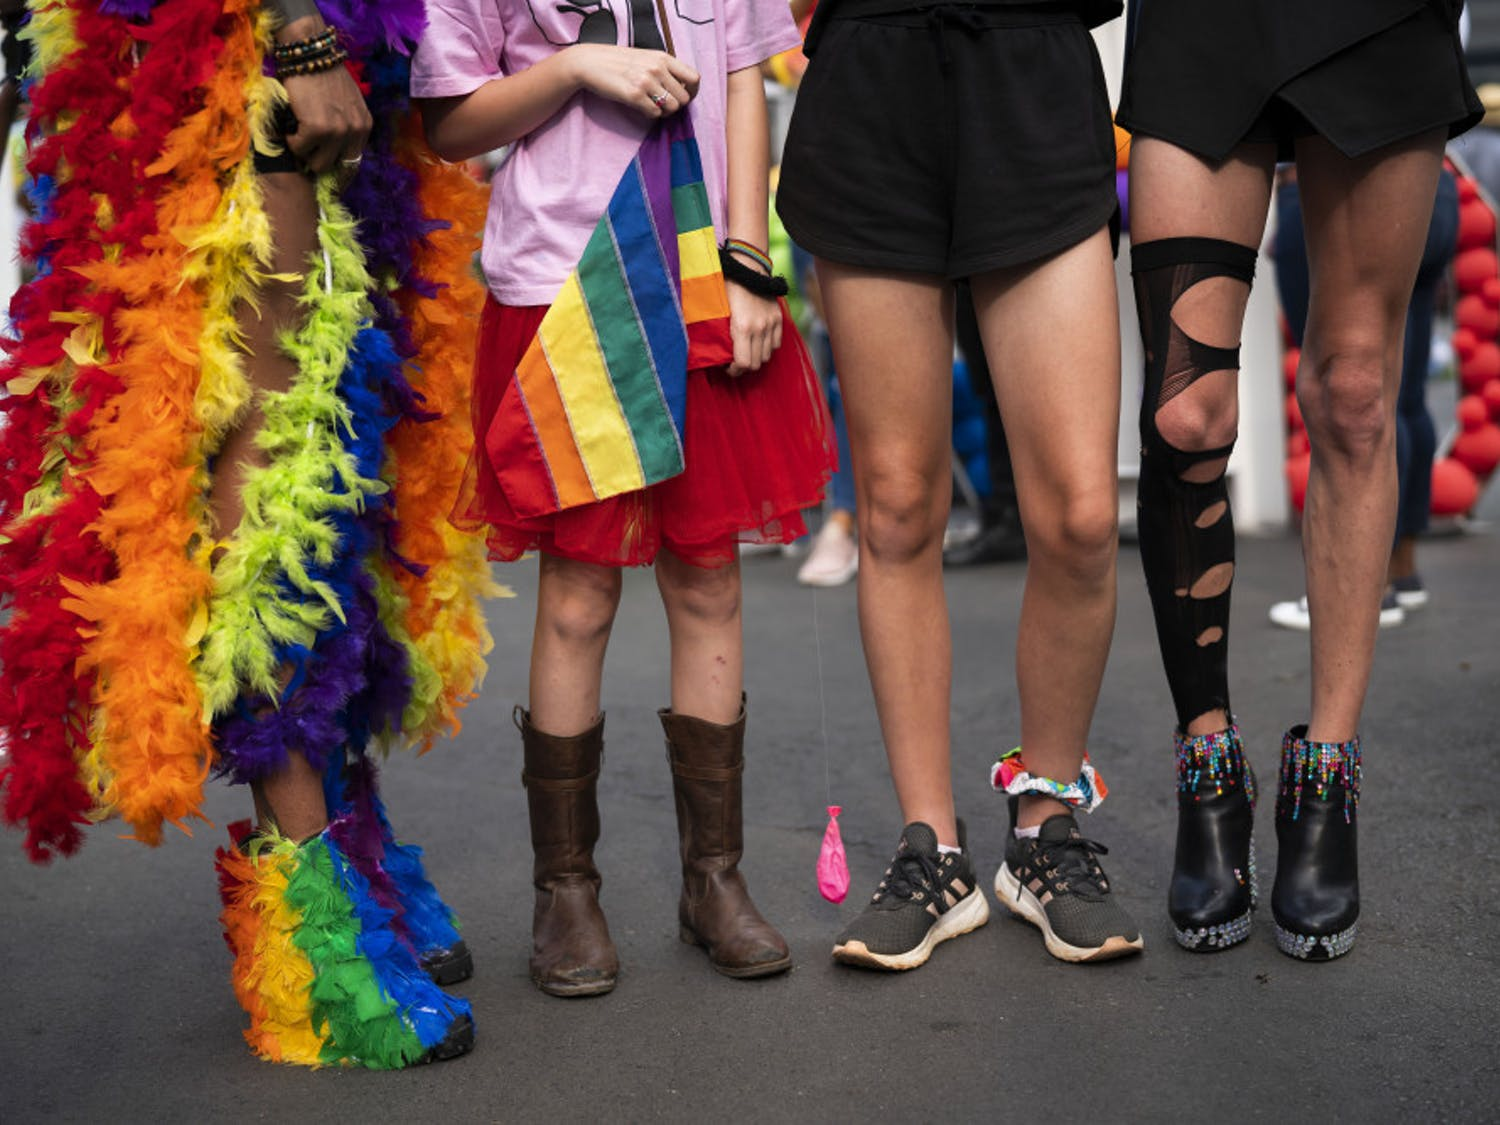 The legs of costumed people participating in the annual Gay Pride event in Johannesburg, South Africa, Saturday Oct. 26, 2019. Thousands took part in this 30th edition of the Gay Pride. (AP Photo/Jerome Delay)